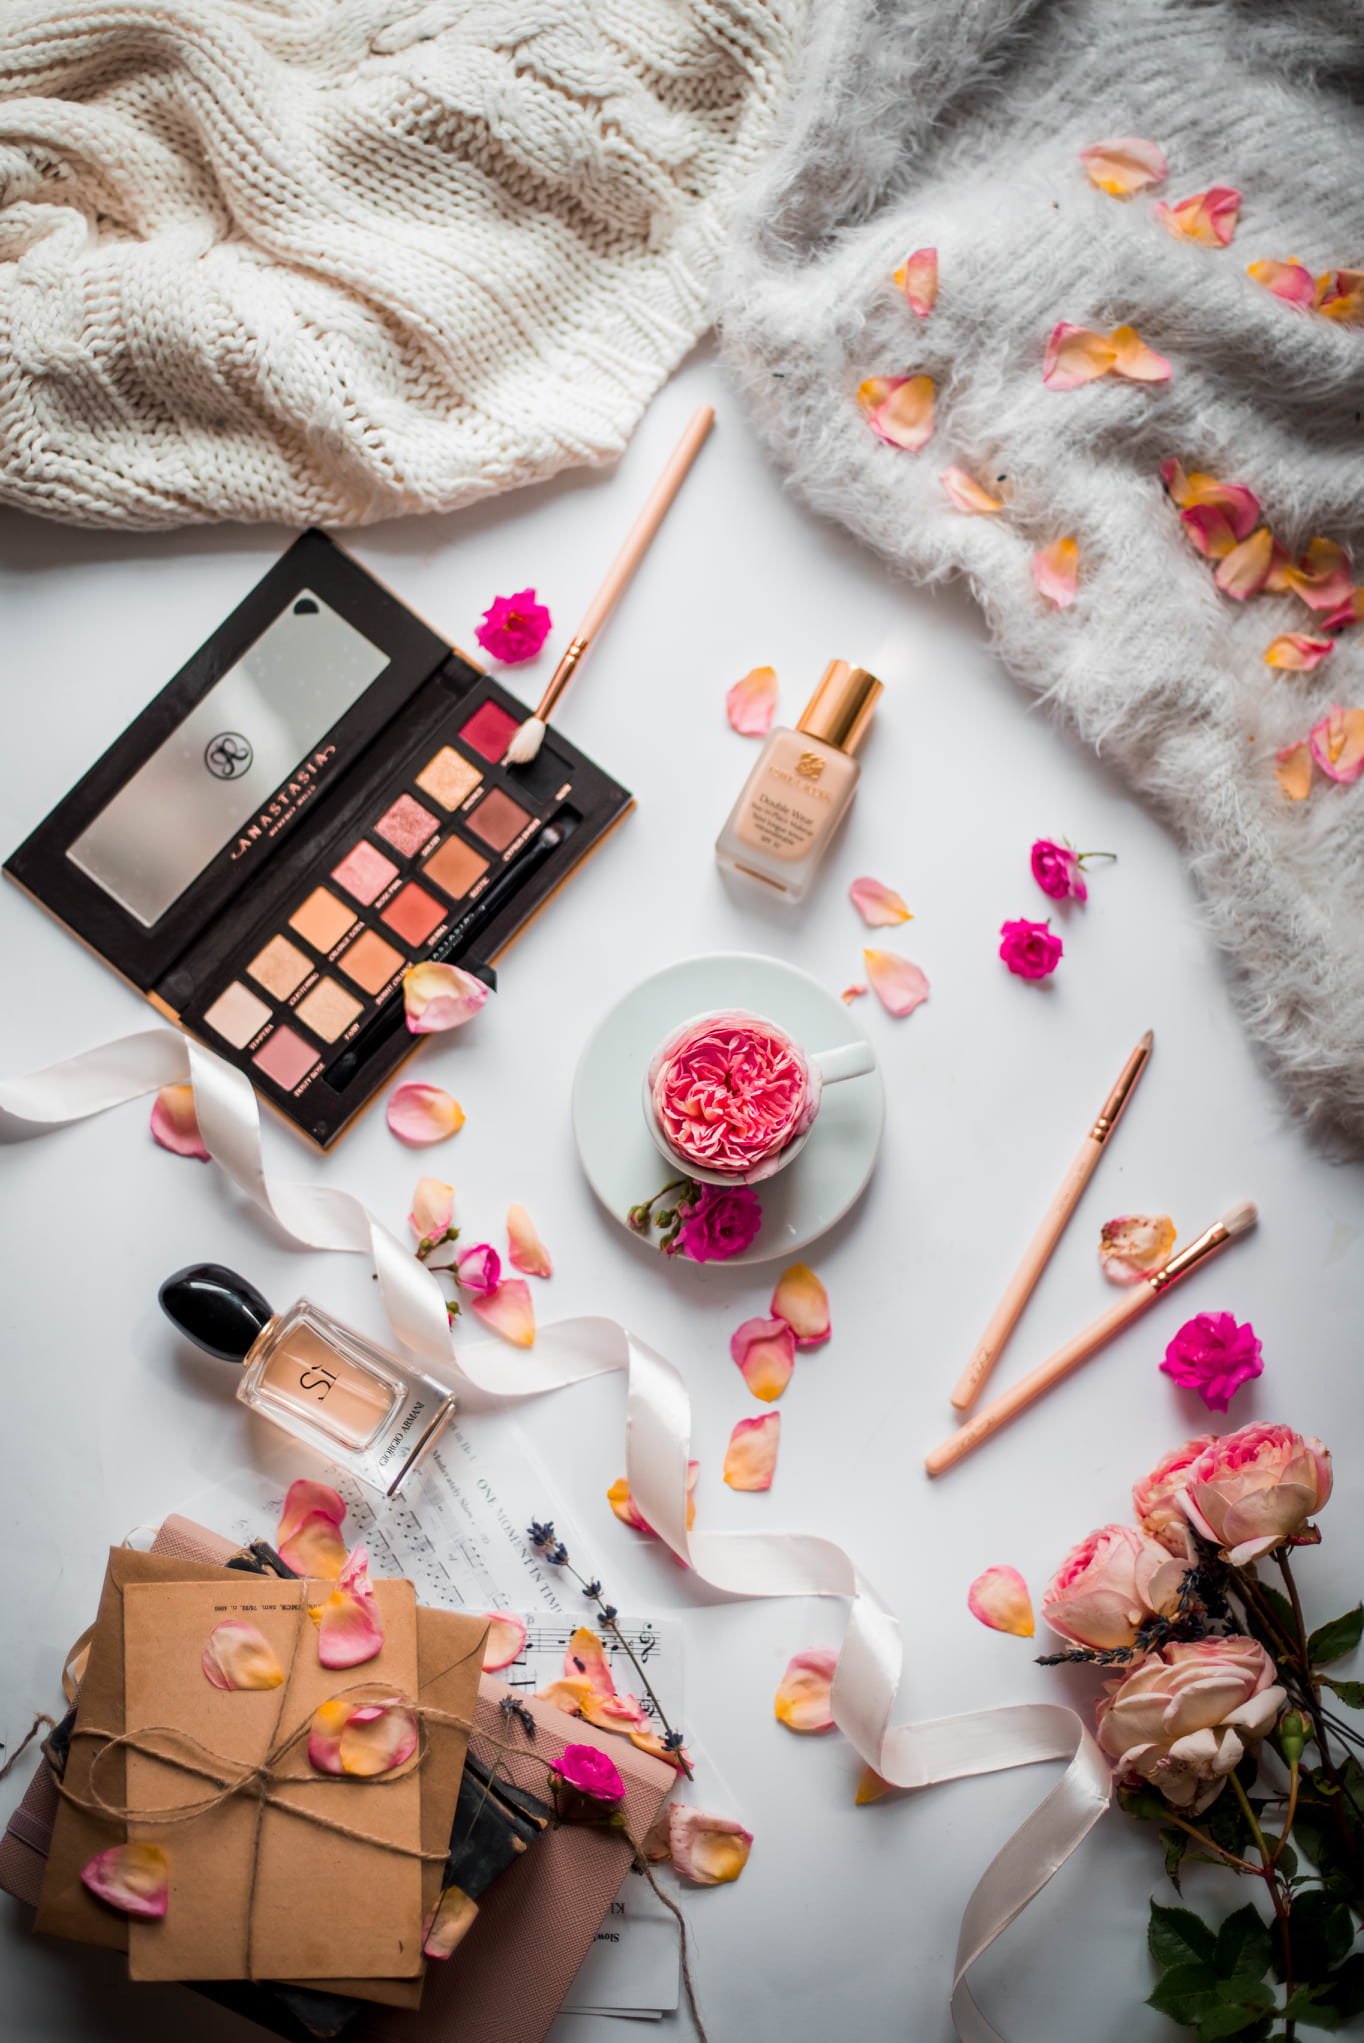 makeup objects decorated with rose flowers on a white surface